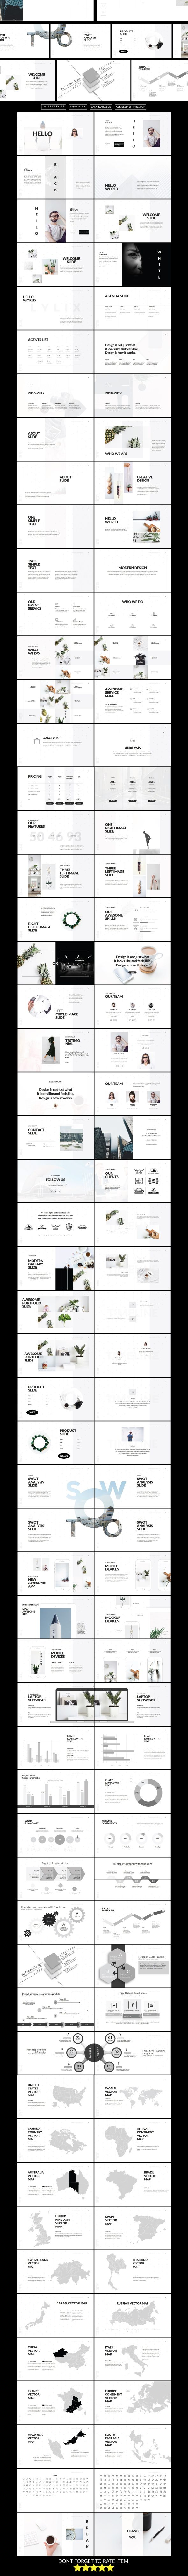 Lylix Business Keynote Design Template - Keynote Templates Presentation Templates. Download here: https://graphicriver.net/item/lylix-business-keynote-template/18868938?ref=yinkira